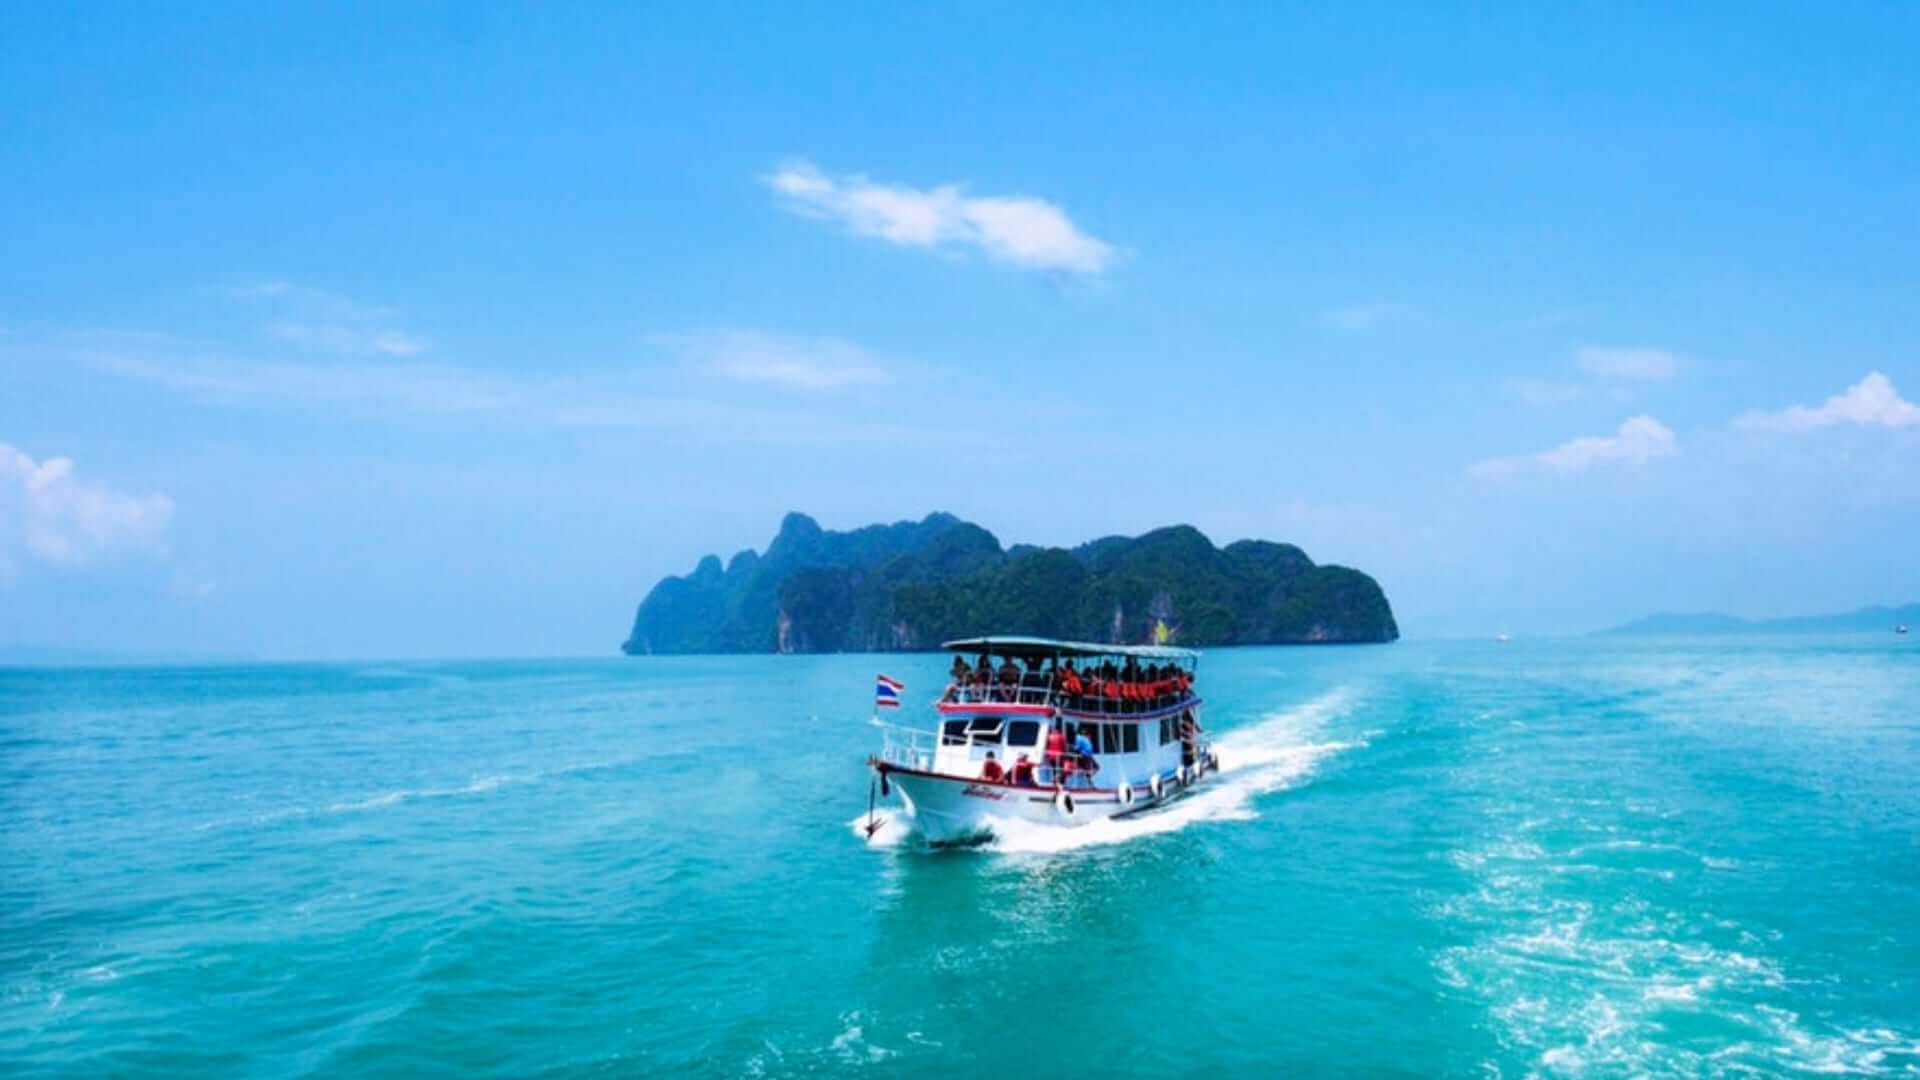 A boat with tourists is sailing on a light blue sea towards an island in Thailand.